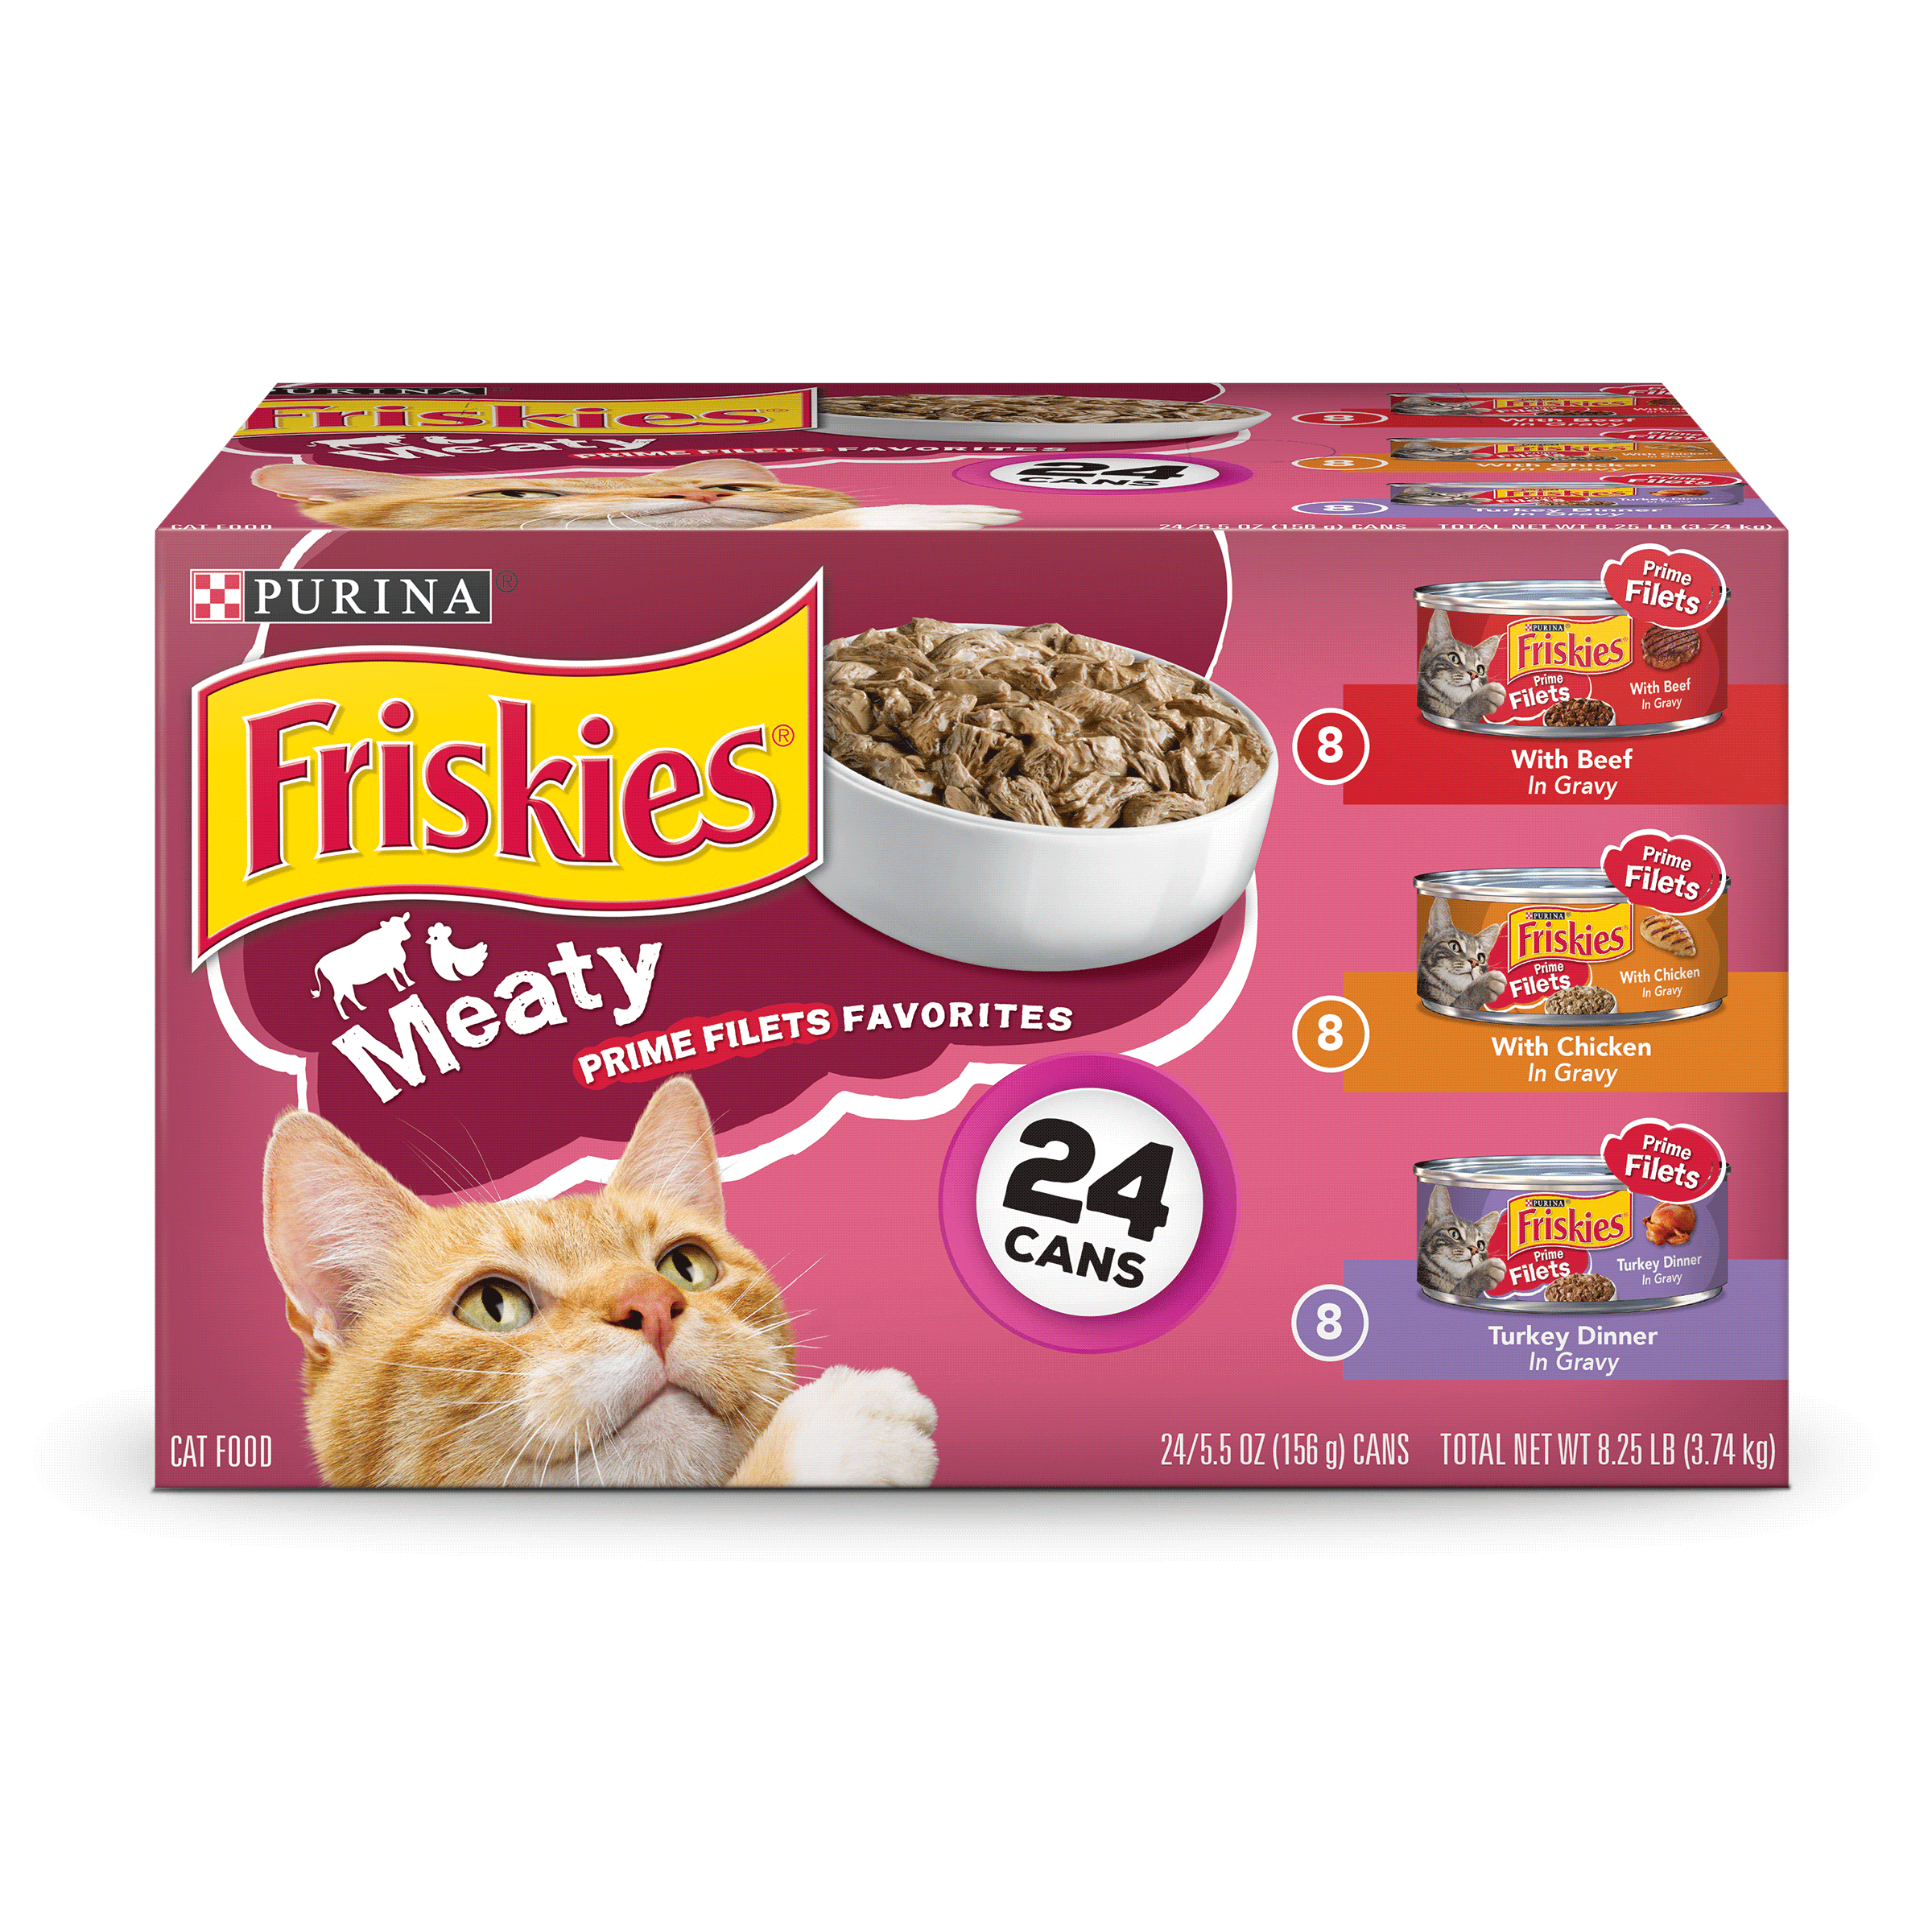 Friskies Prime Filets Meaty Favorites Adult Wet Cat Food Variety Pack (24) 5.5 oz. Cans by Nestle Purina Petcare Company